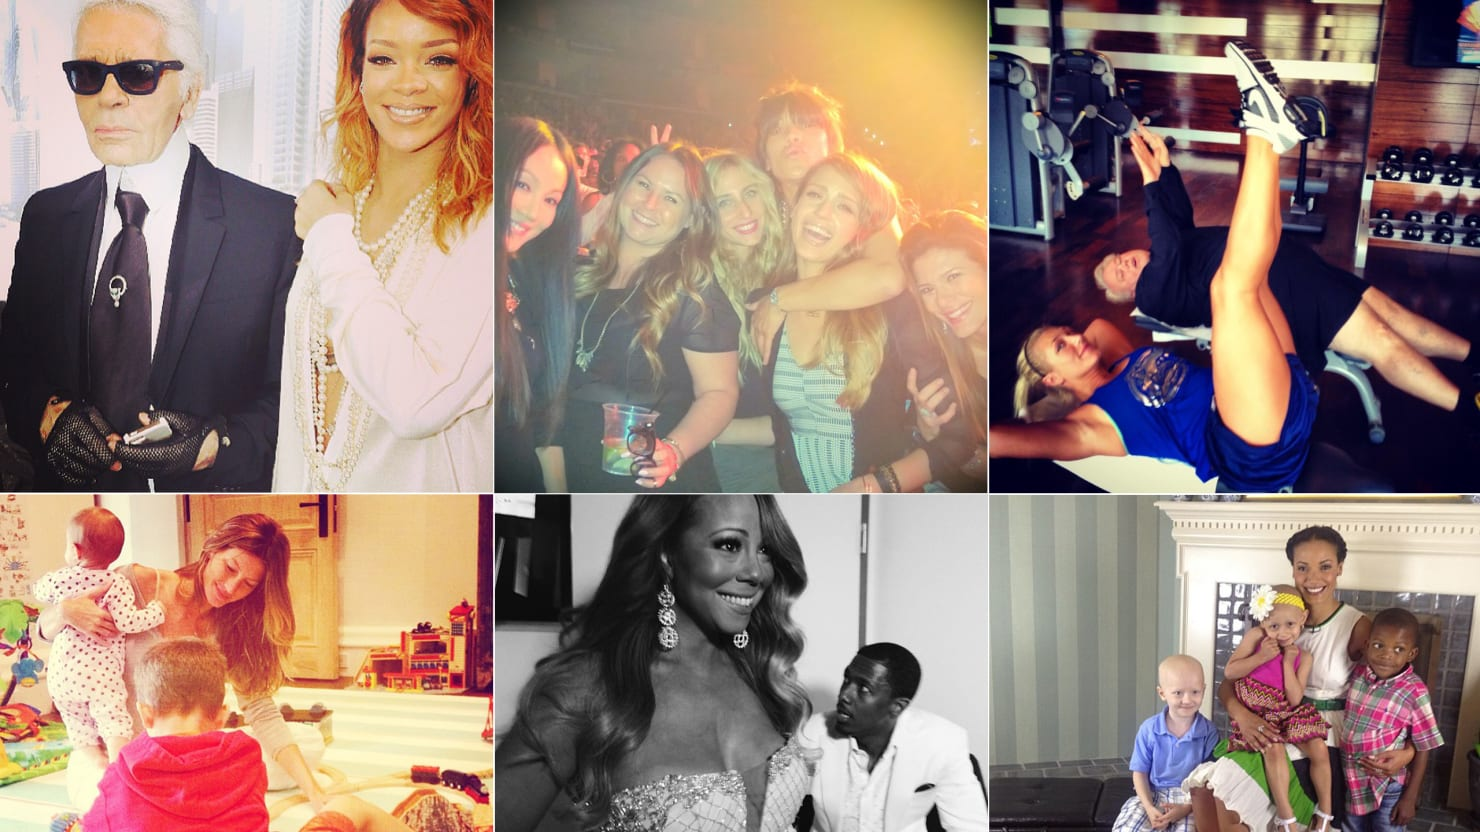 Rihanna, Selena Gomez & More Celebrity Twitter Picture (PHOTOS)